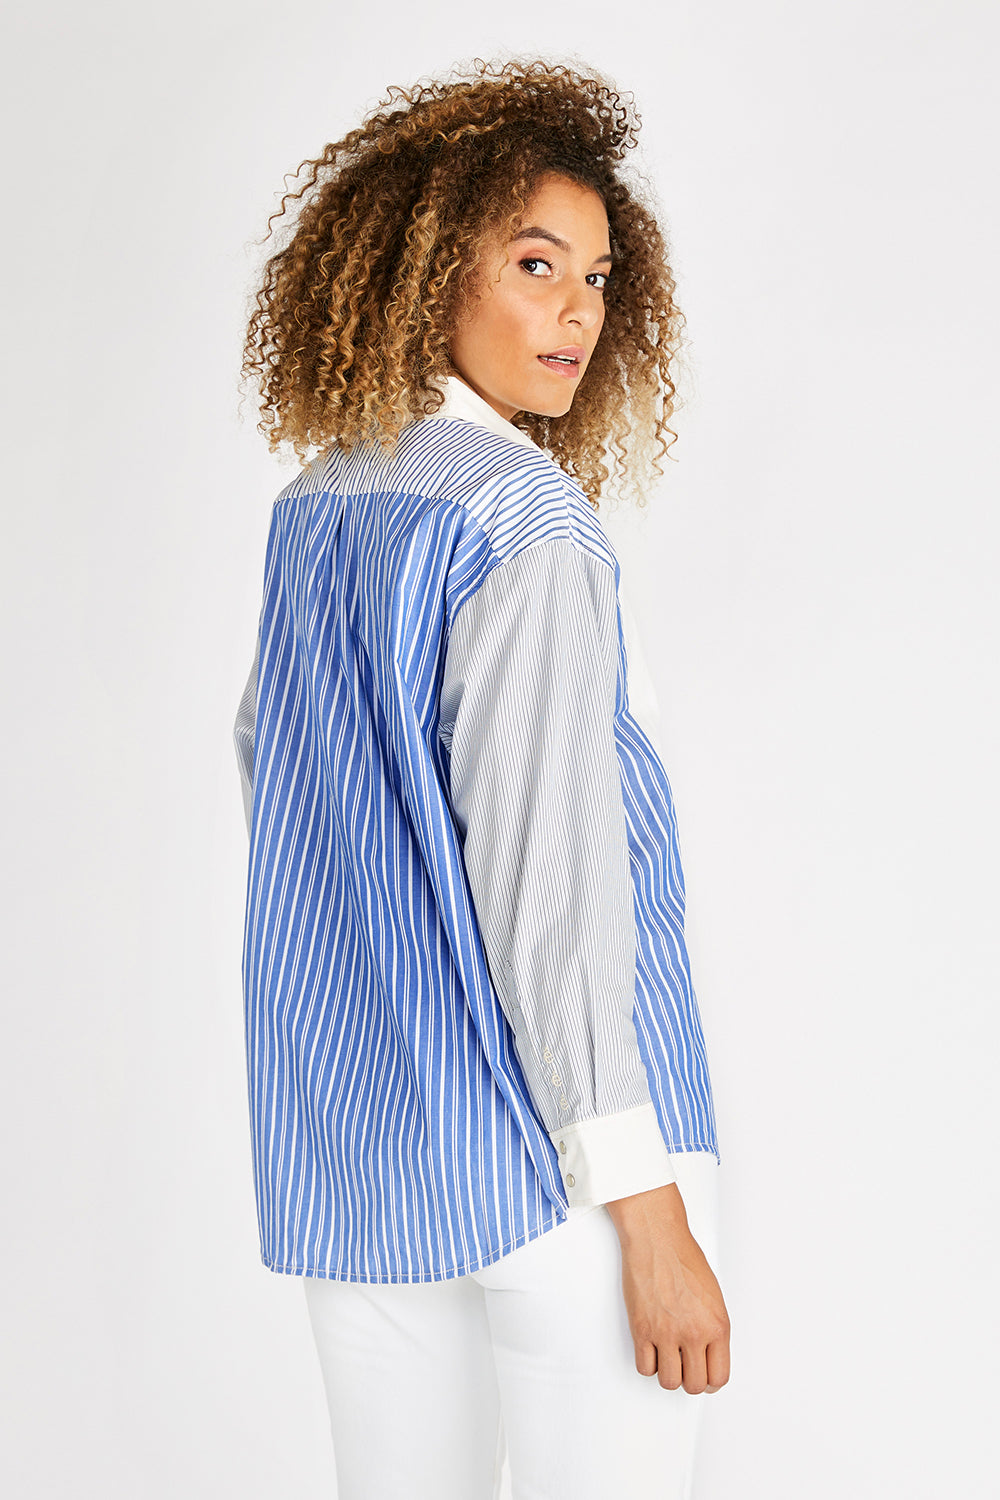 Joni Upcycled Button Down Shirt - Avalon